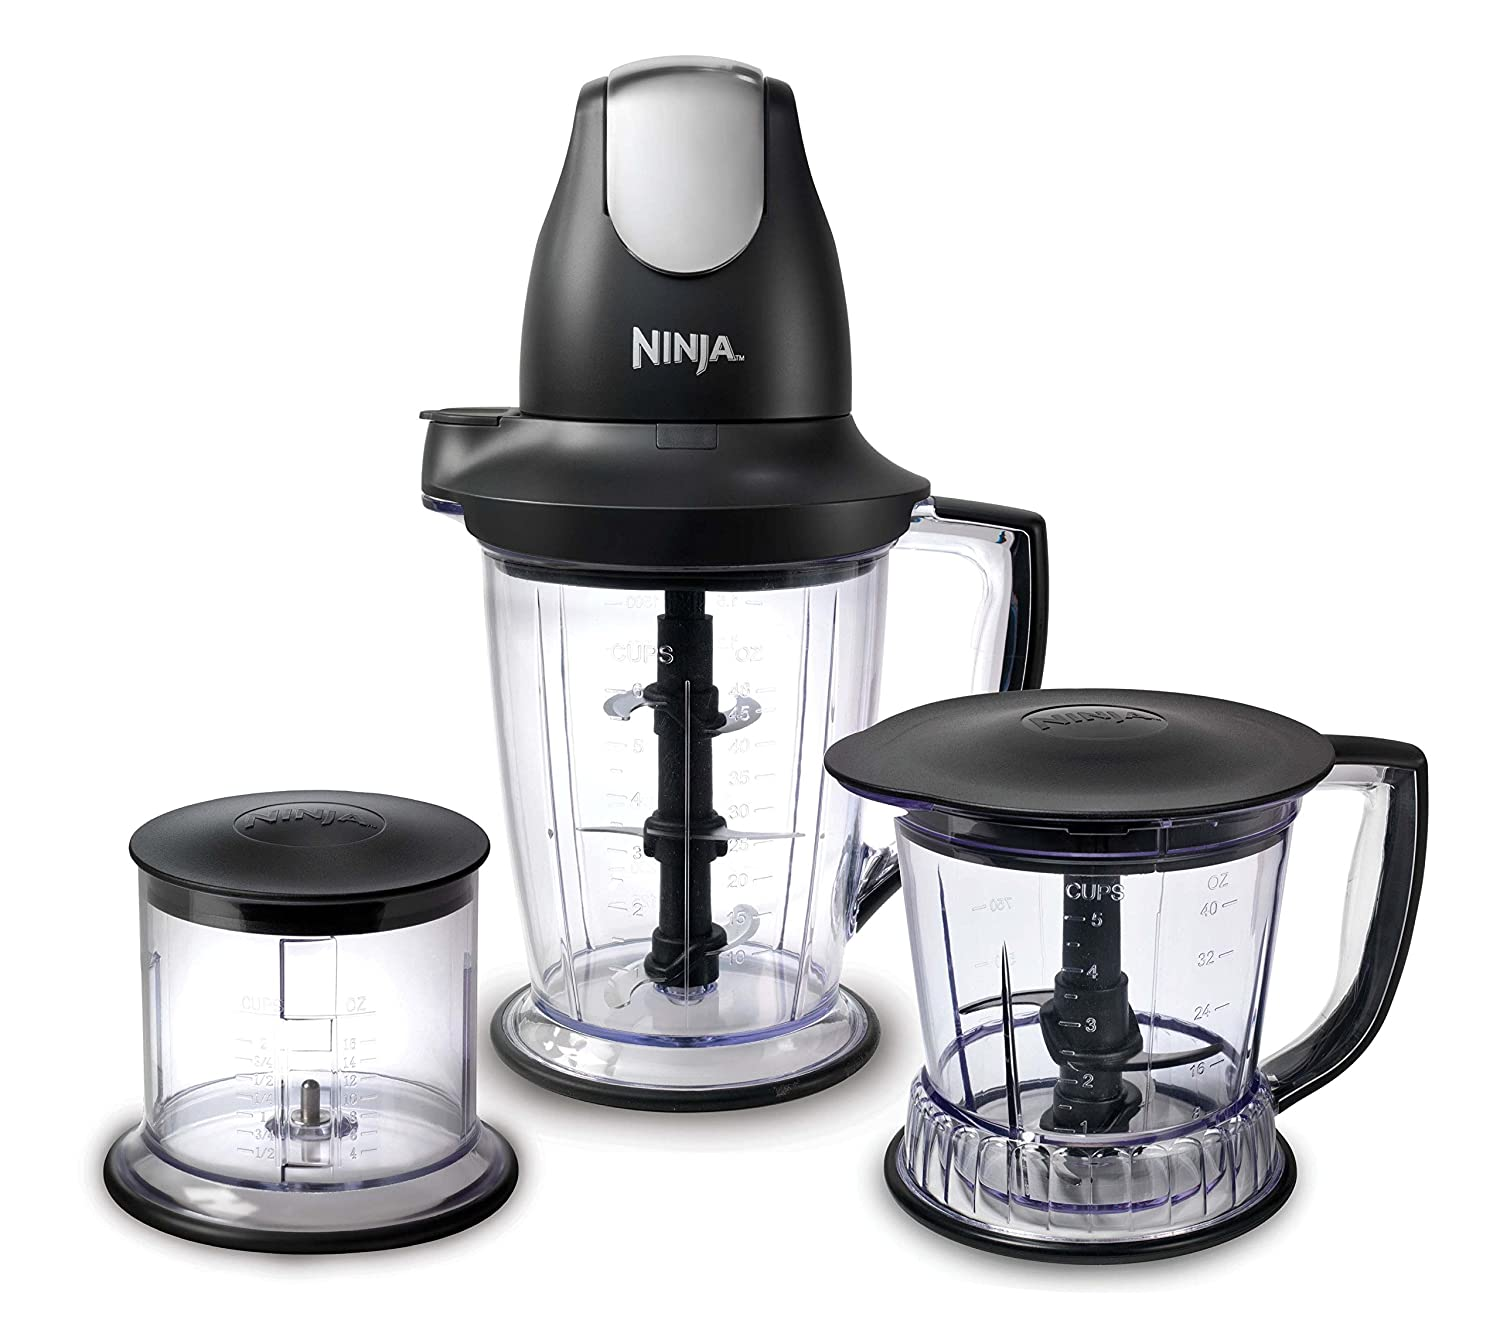 Best Food Processor 2021: The 5 Most Top-Rated And Best Selling Products 2